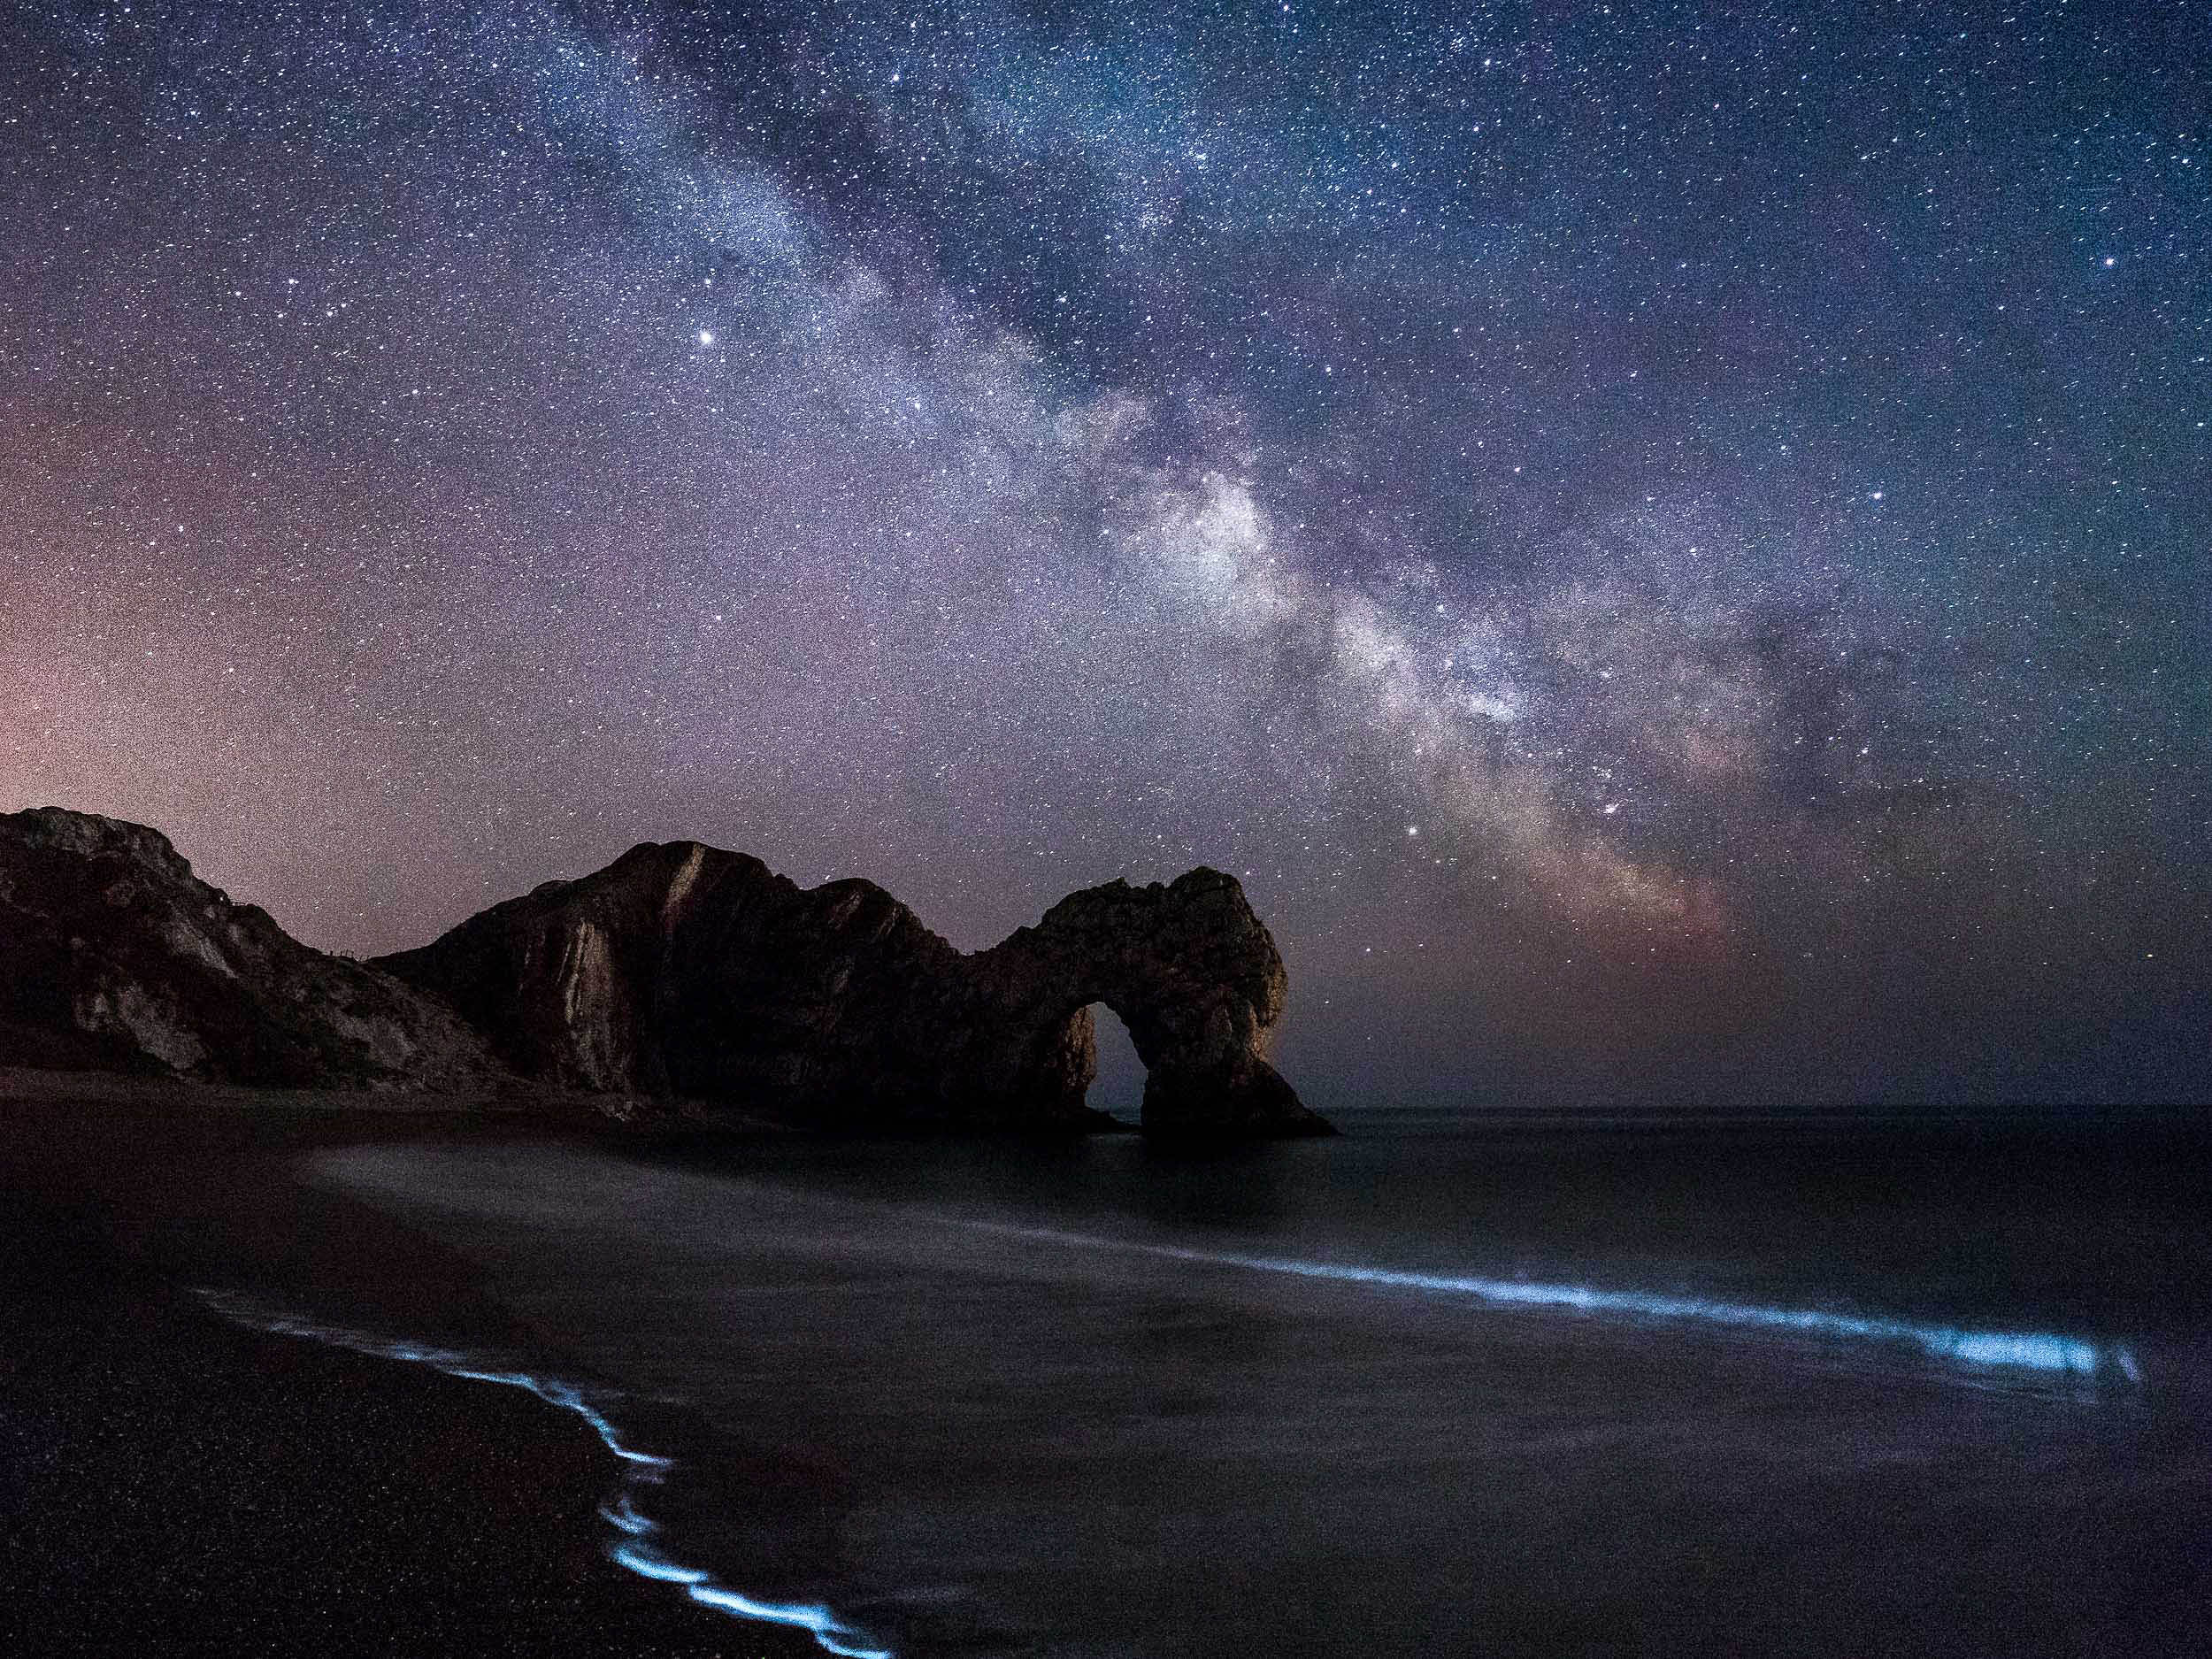 Bioluminescent Algae and the Milky Way at Durdle Door, Dorset